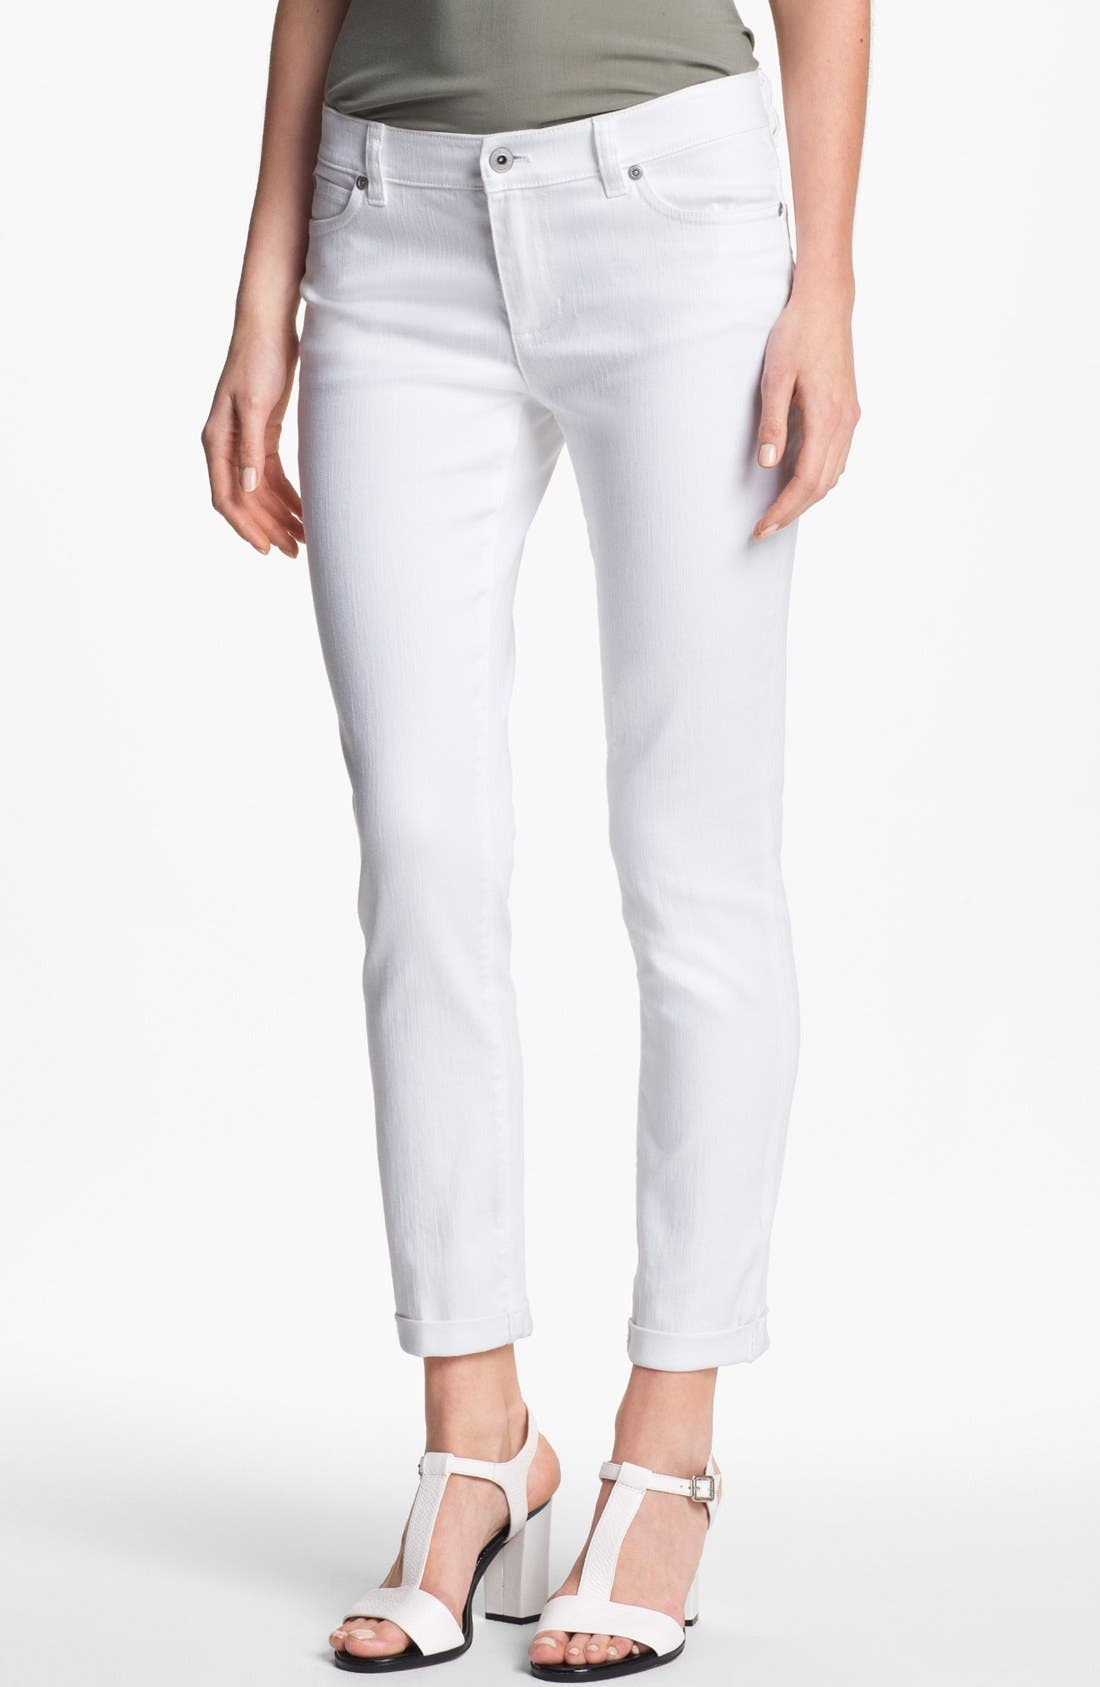 Alternate Image 1 Selected - Two by Vince Camuto Cuff Crop Jeans (Petite)